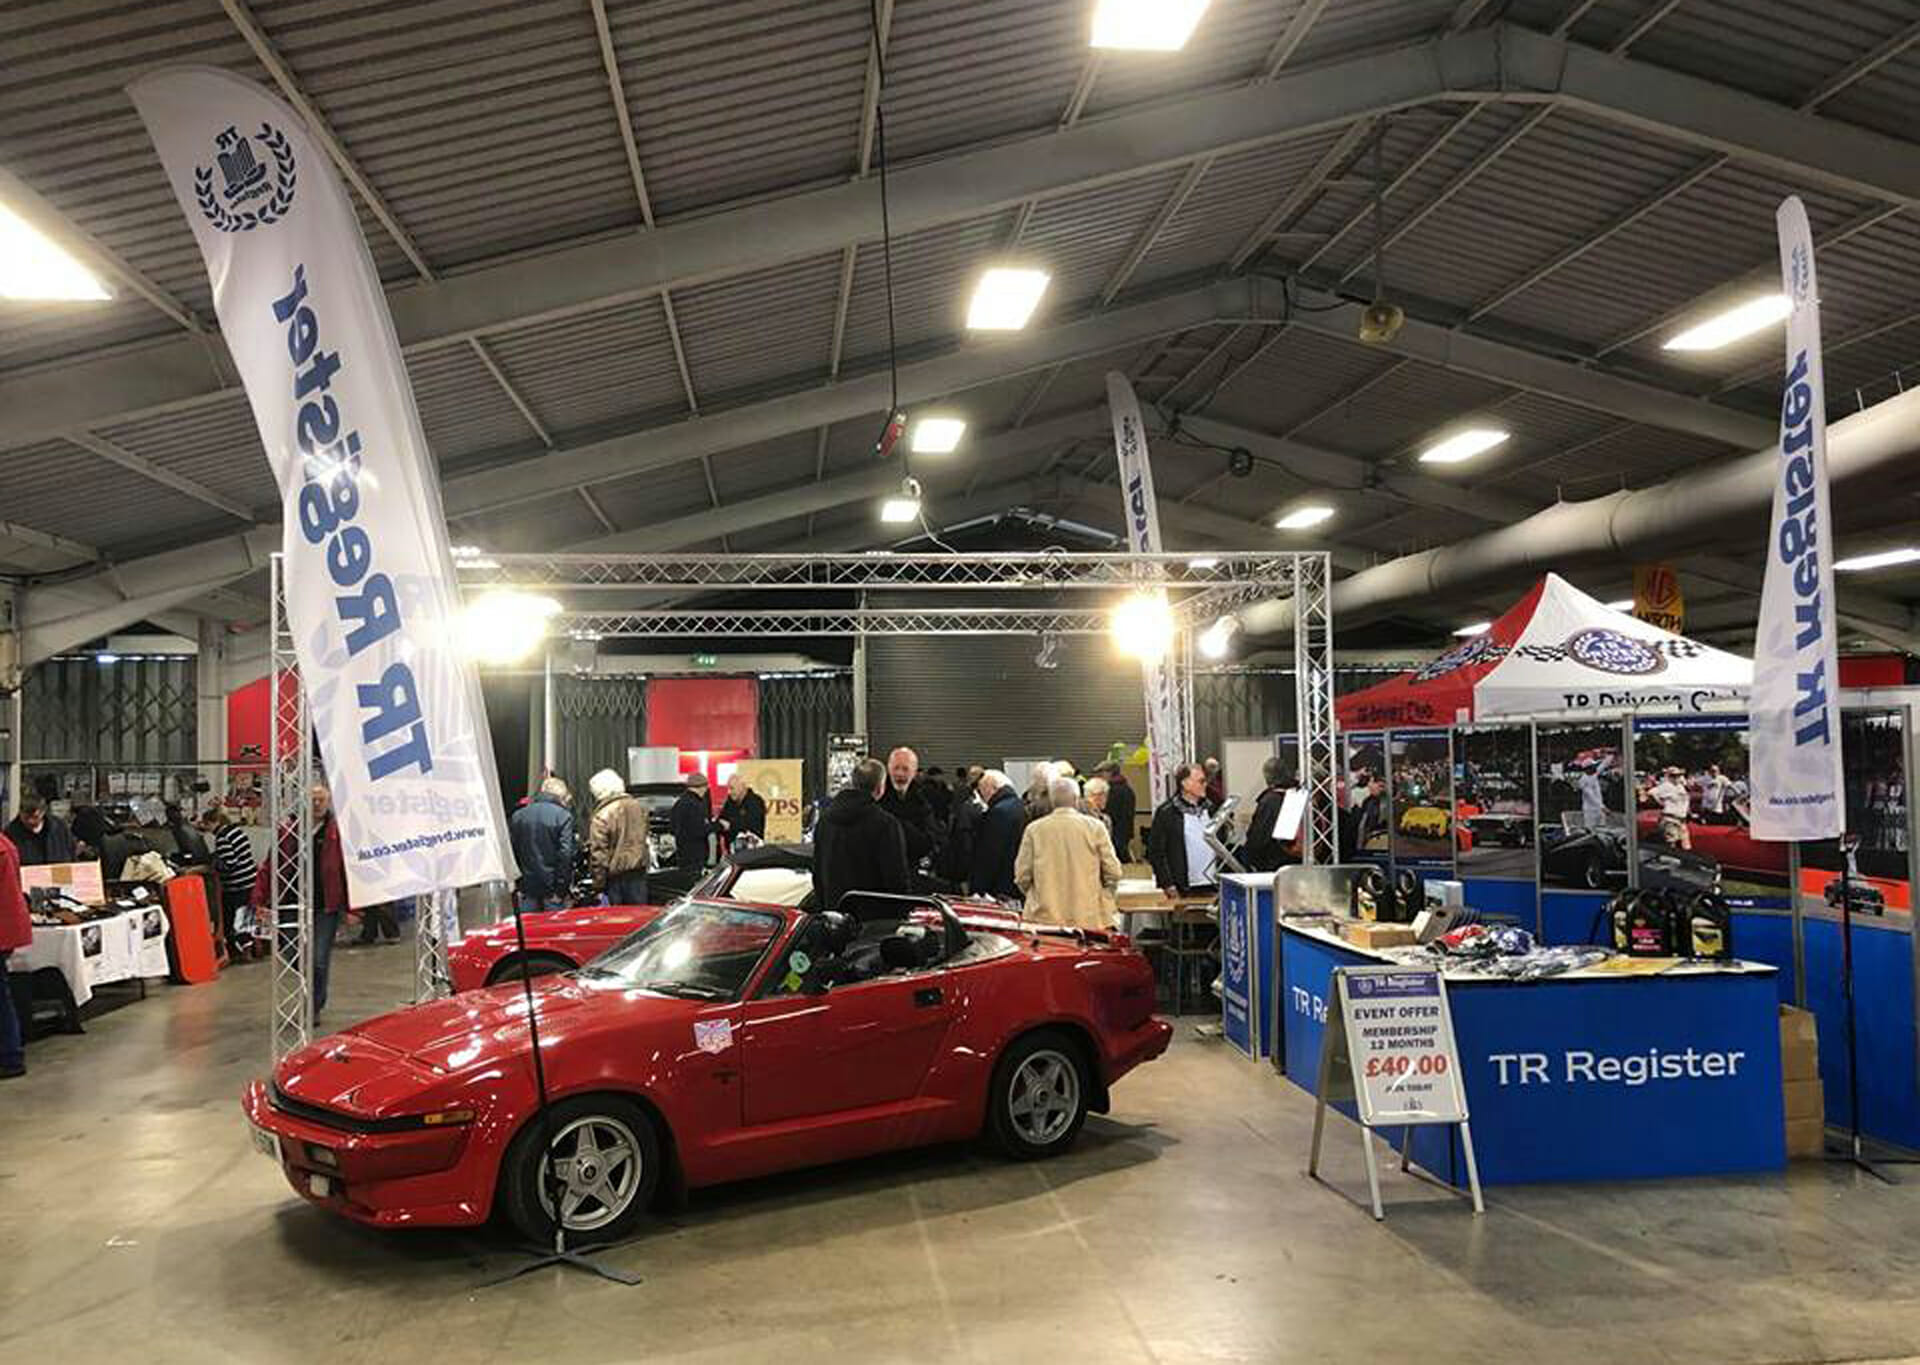 The International MG and Triumph Spares Day 2018